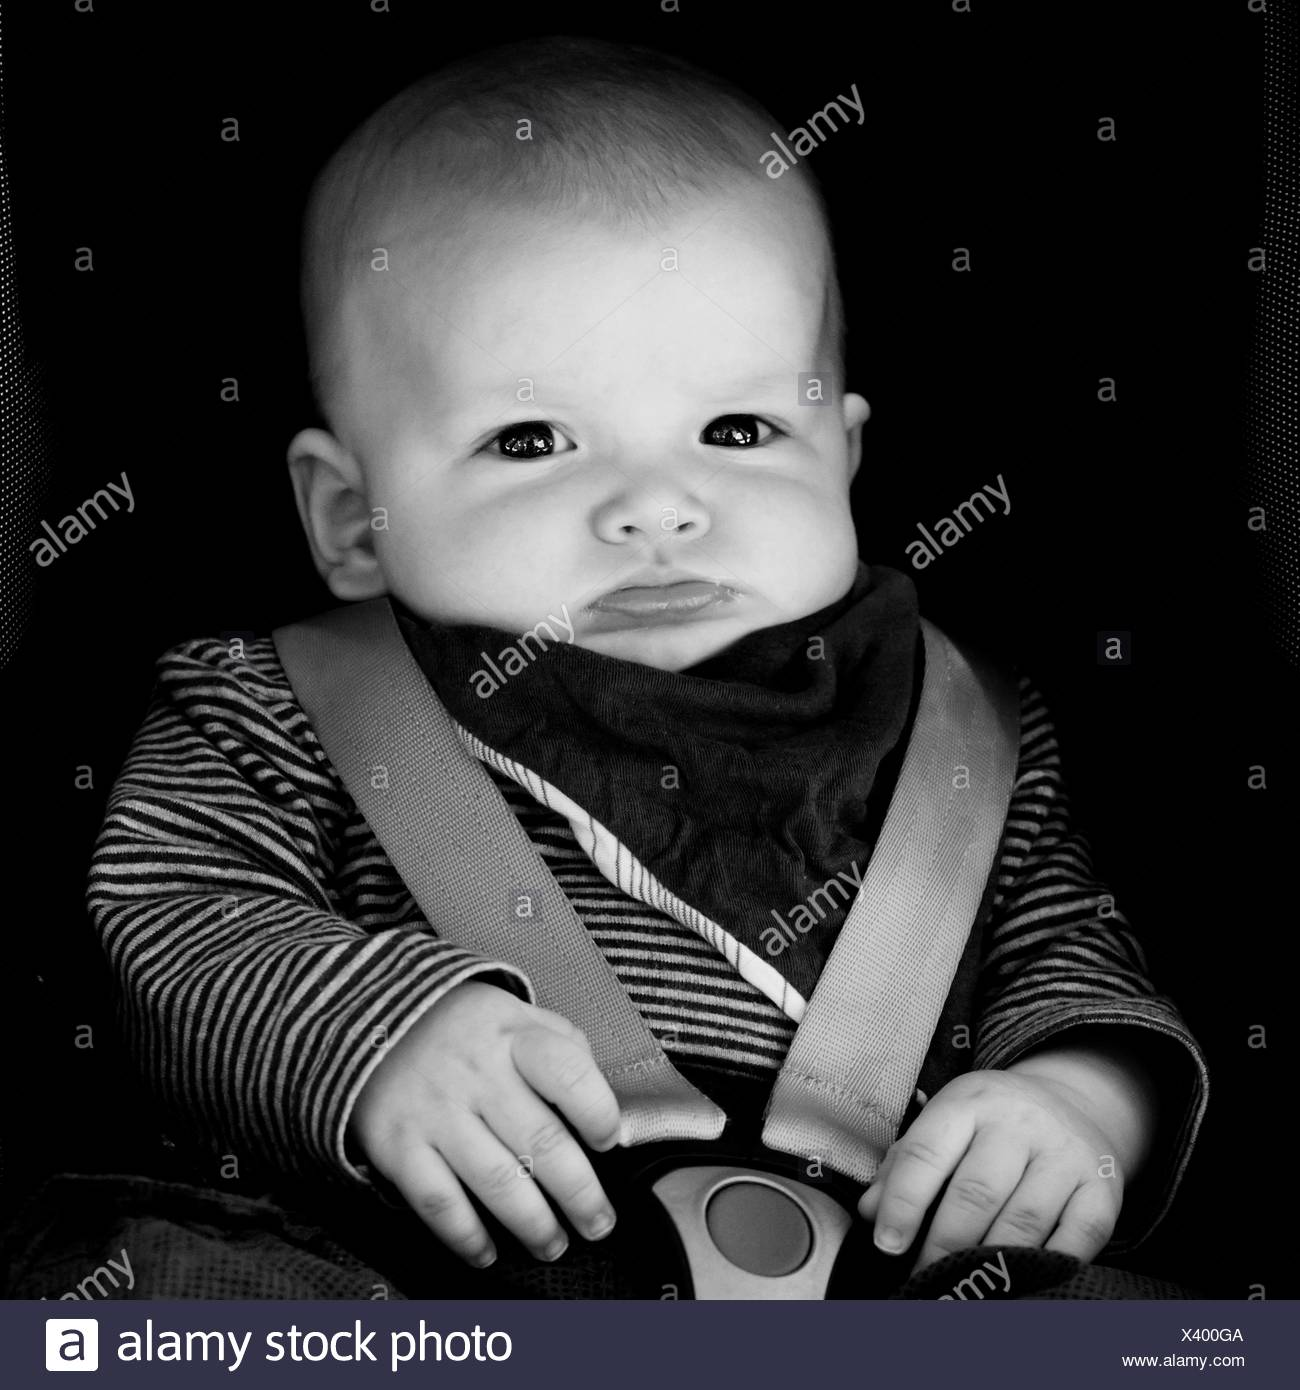 Baby 4 Monate Sitzen Baby Seat Belt Stockfotos And Baby Seat Belt Bilder Alamy